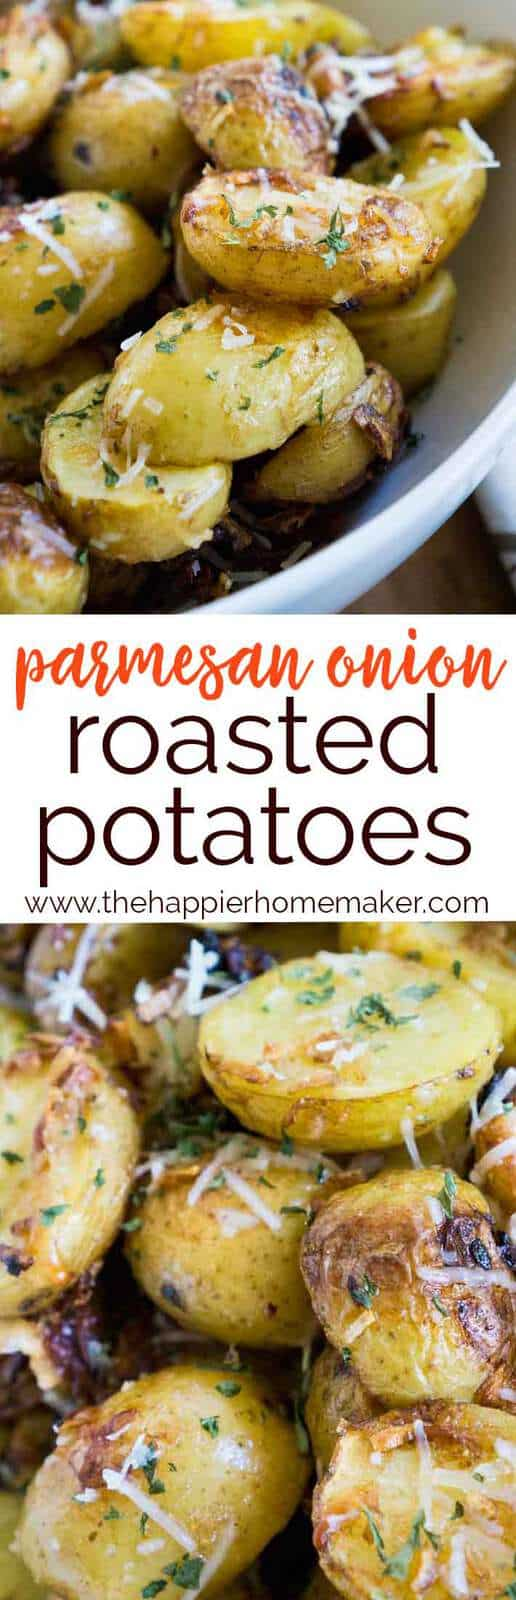 Perfectly soft on the inside and crispy on the outside and packed with onion and parmesan flavor, these roasted potatoes are sure to be your new favorite side dish recipe.